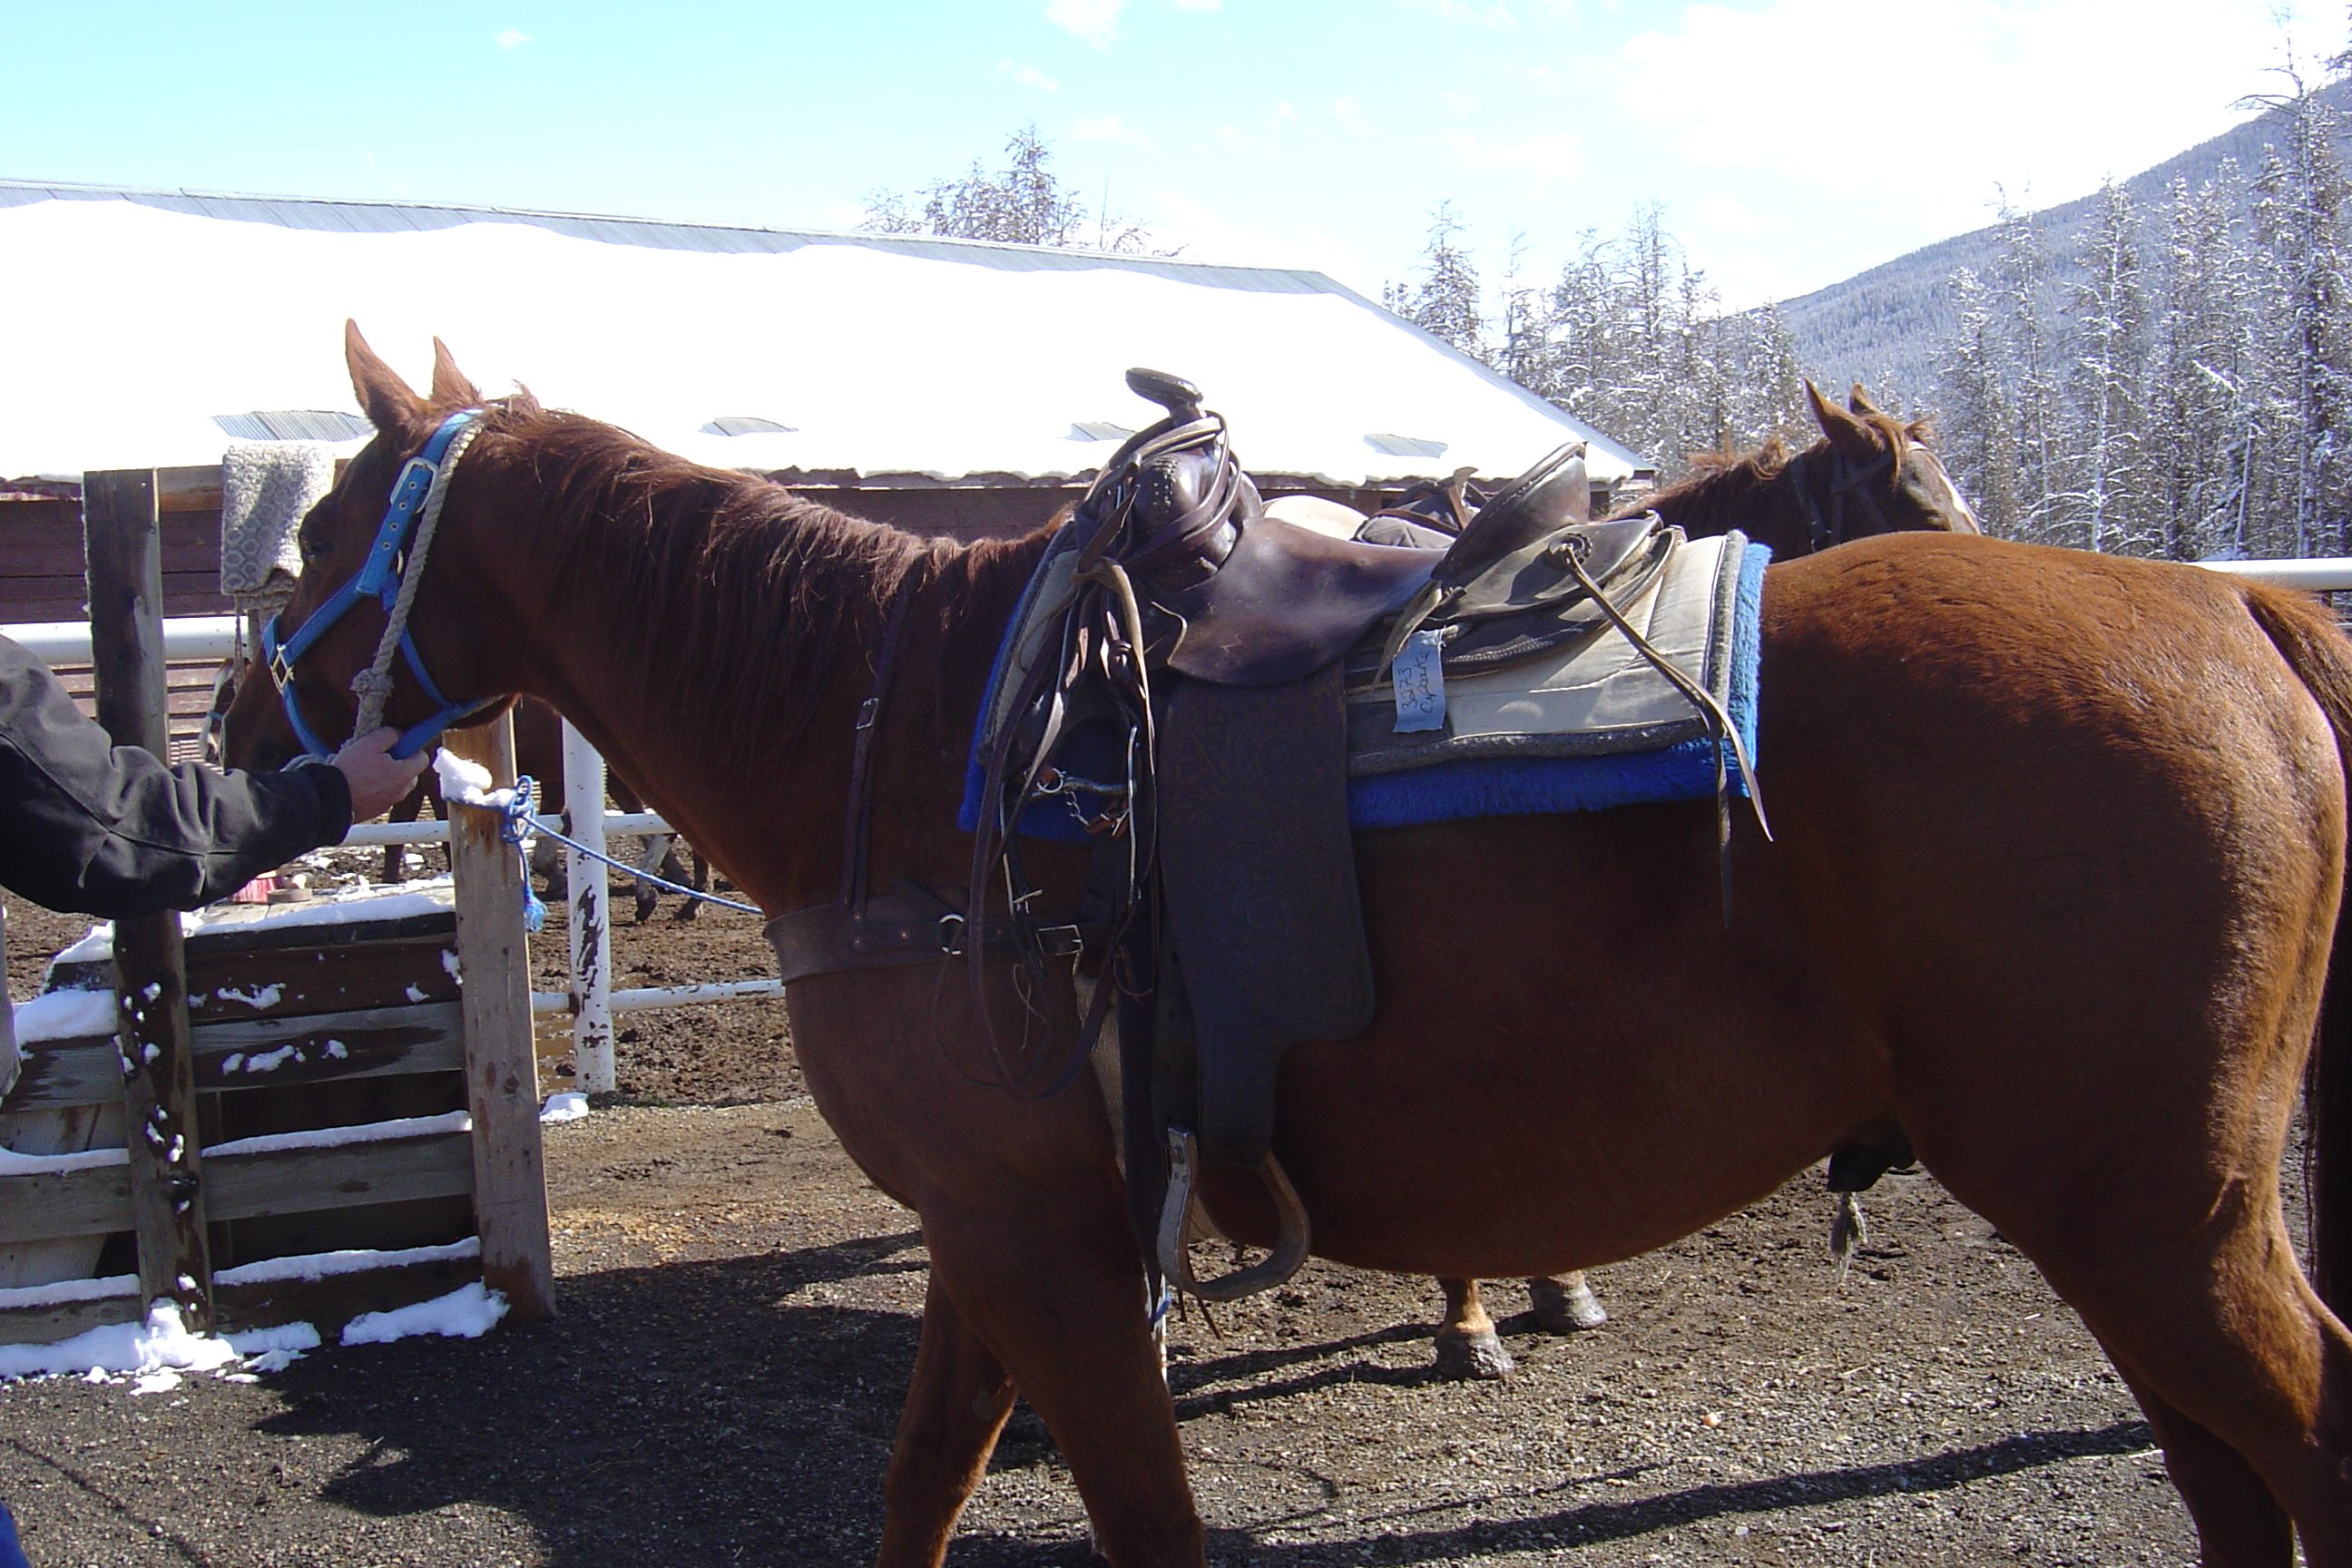 My lovely horse was named Cupcake and she always wanted to go faster than the horse in front of her.